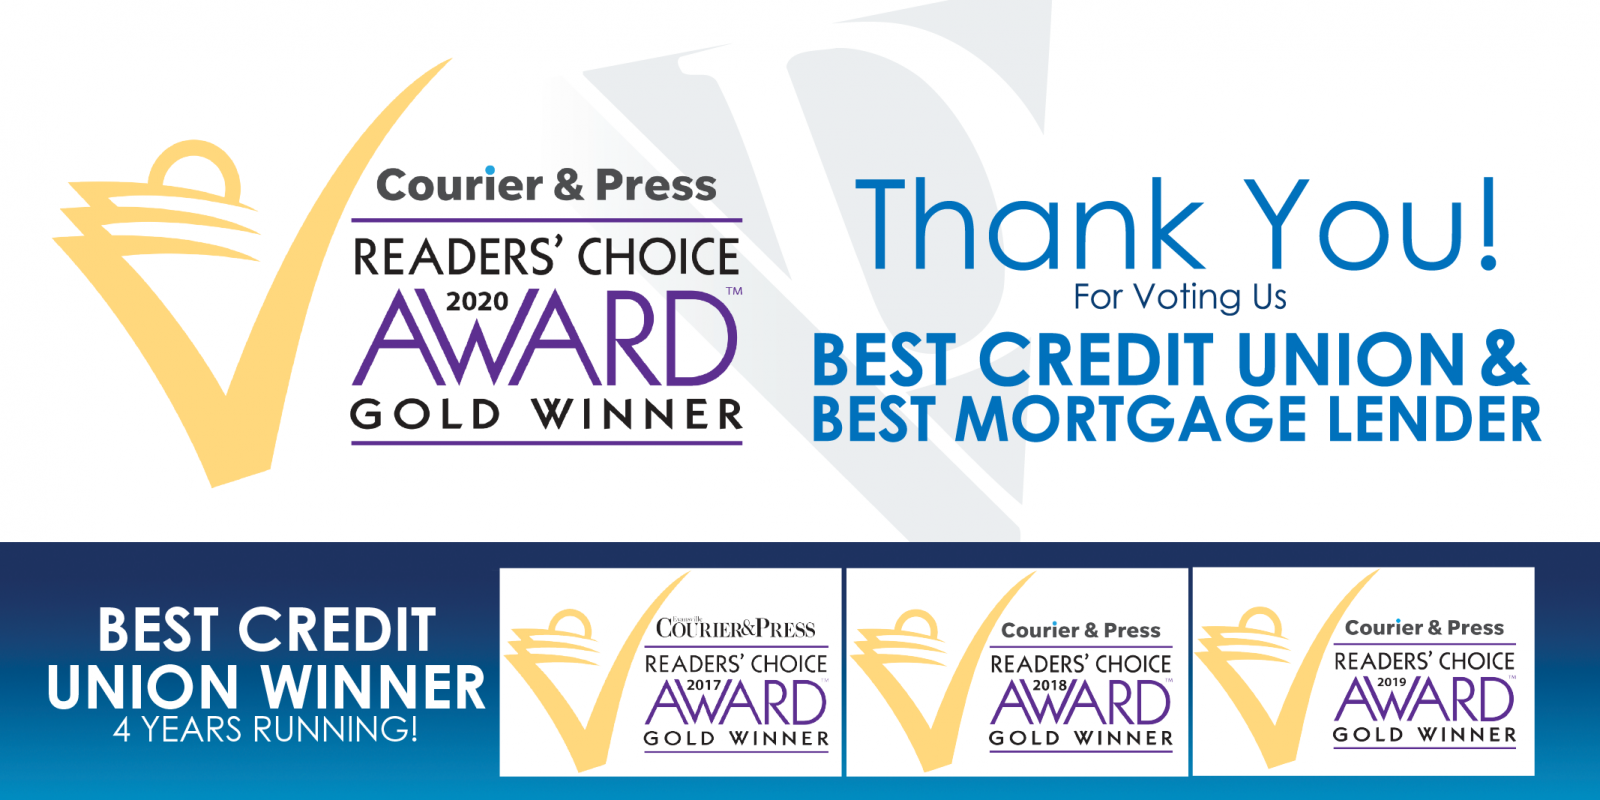 Diamond Valley Voted Best Credit Union and Best Mortgage Lender in the Courier and Press 2020 Reader's Choice Awards.